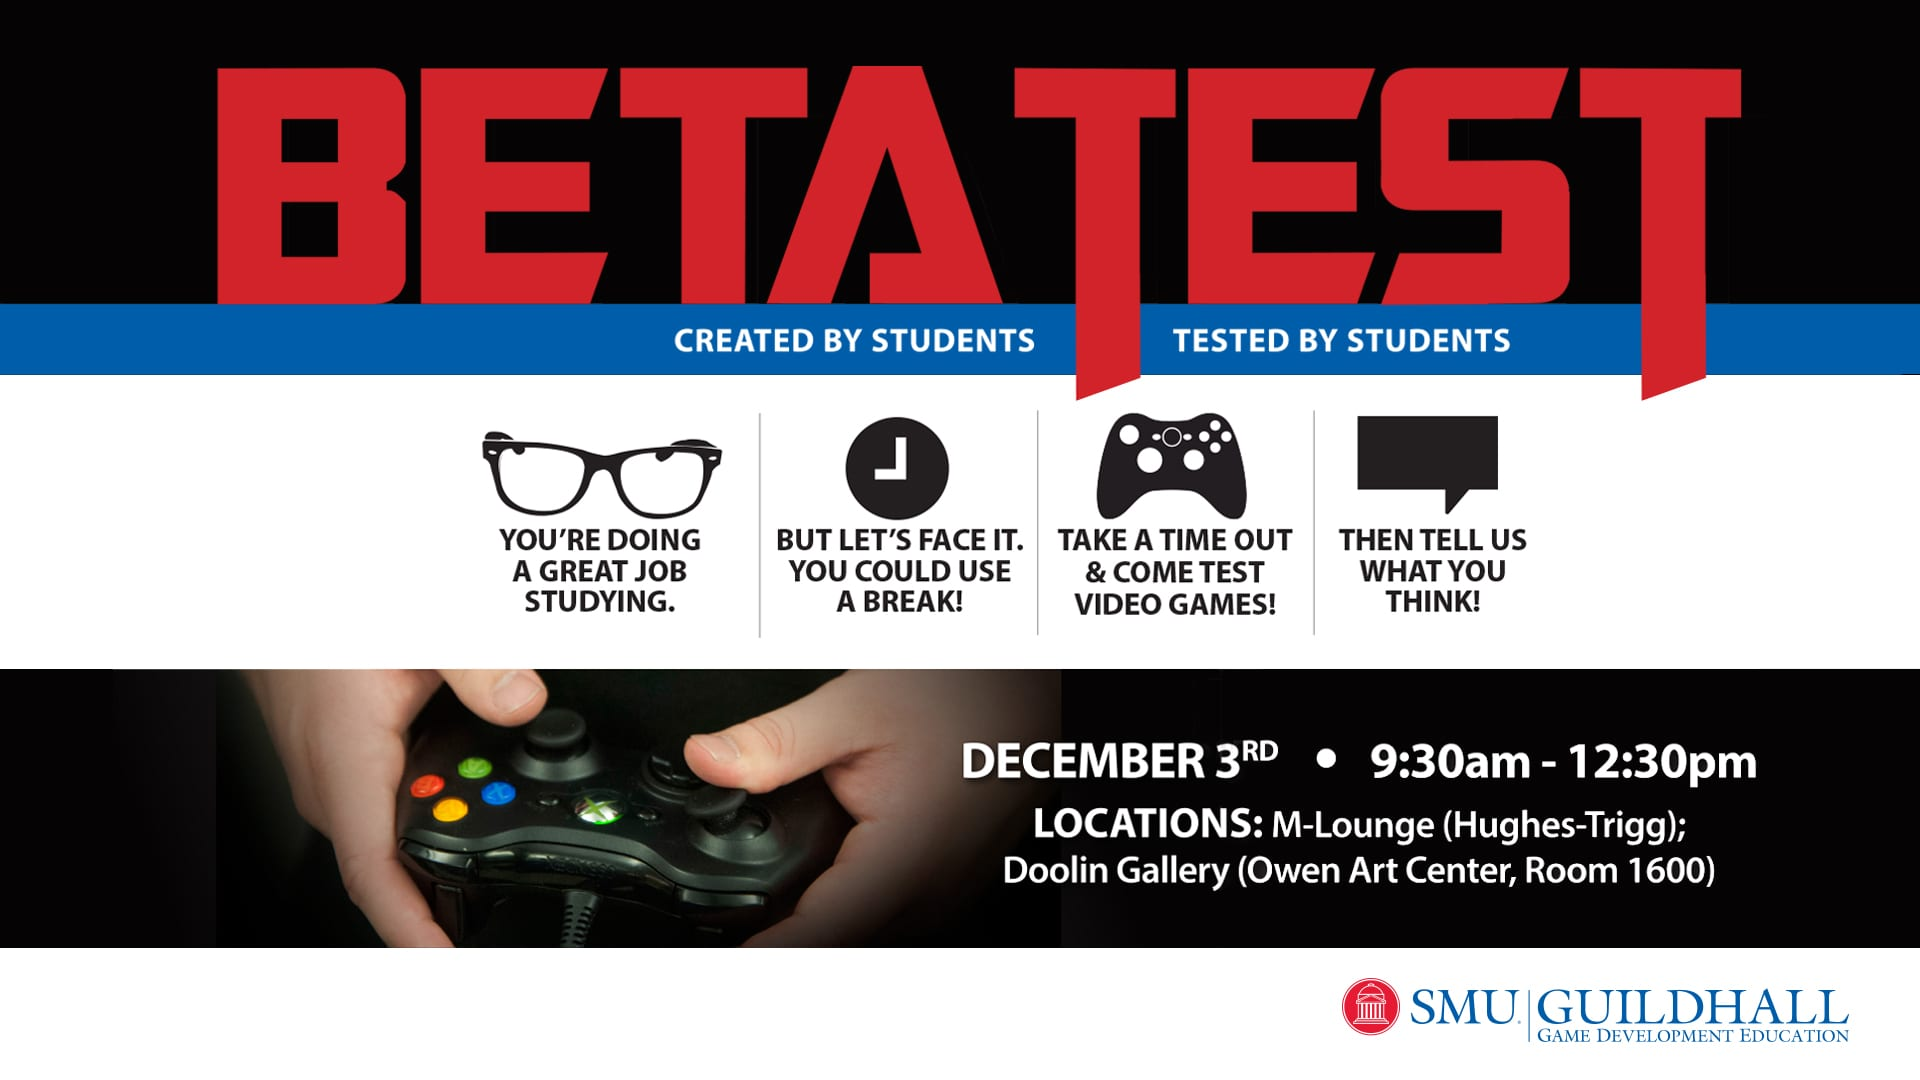 SMU Guildhall 2015 Fall Beta Test flyer